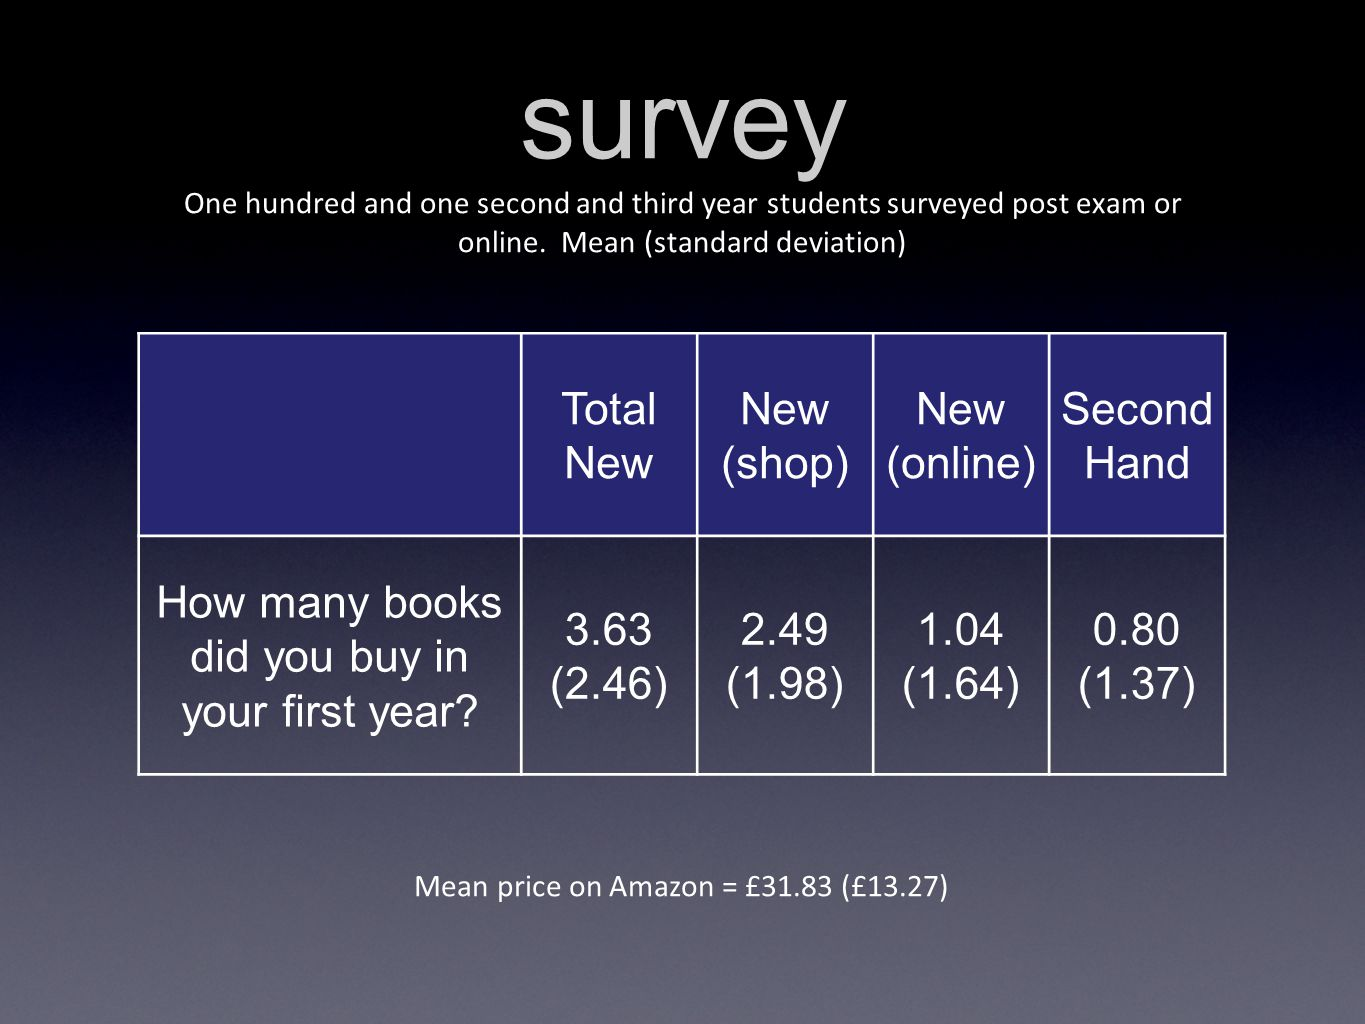 survey One hundred and one second and third year students surveyed post exam or online.